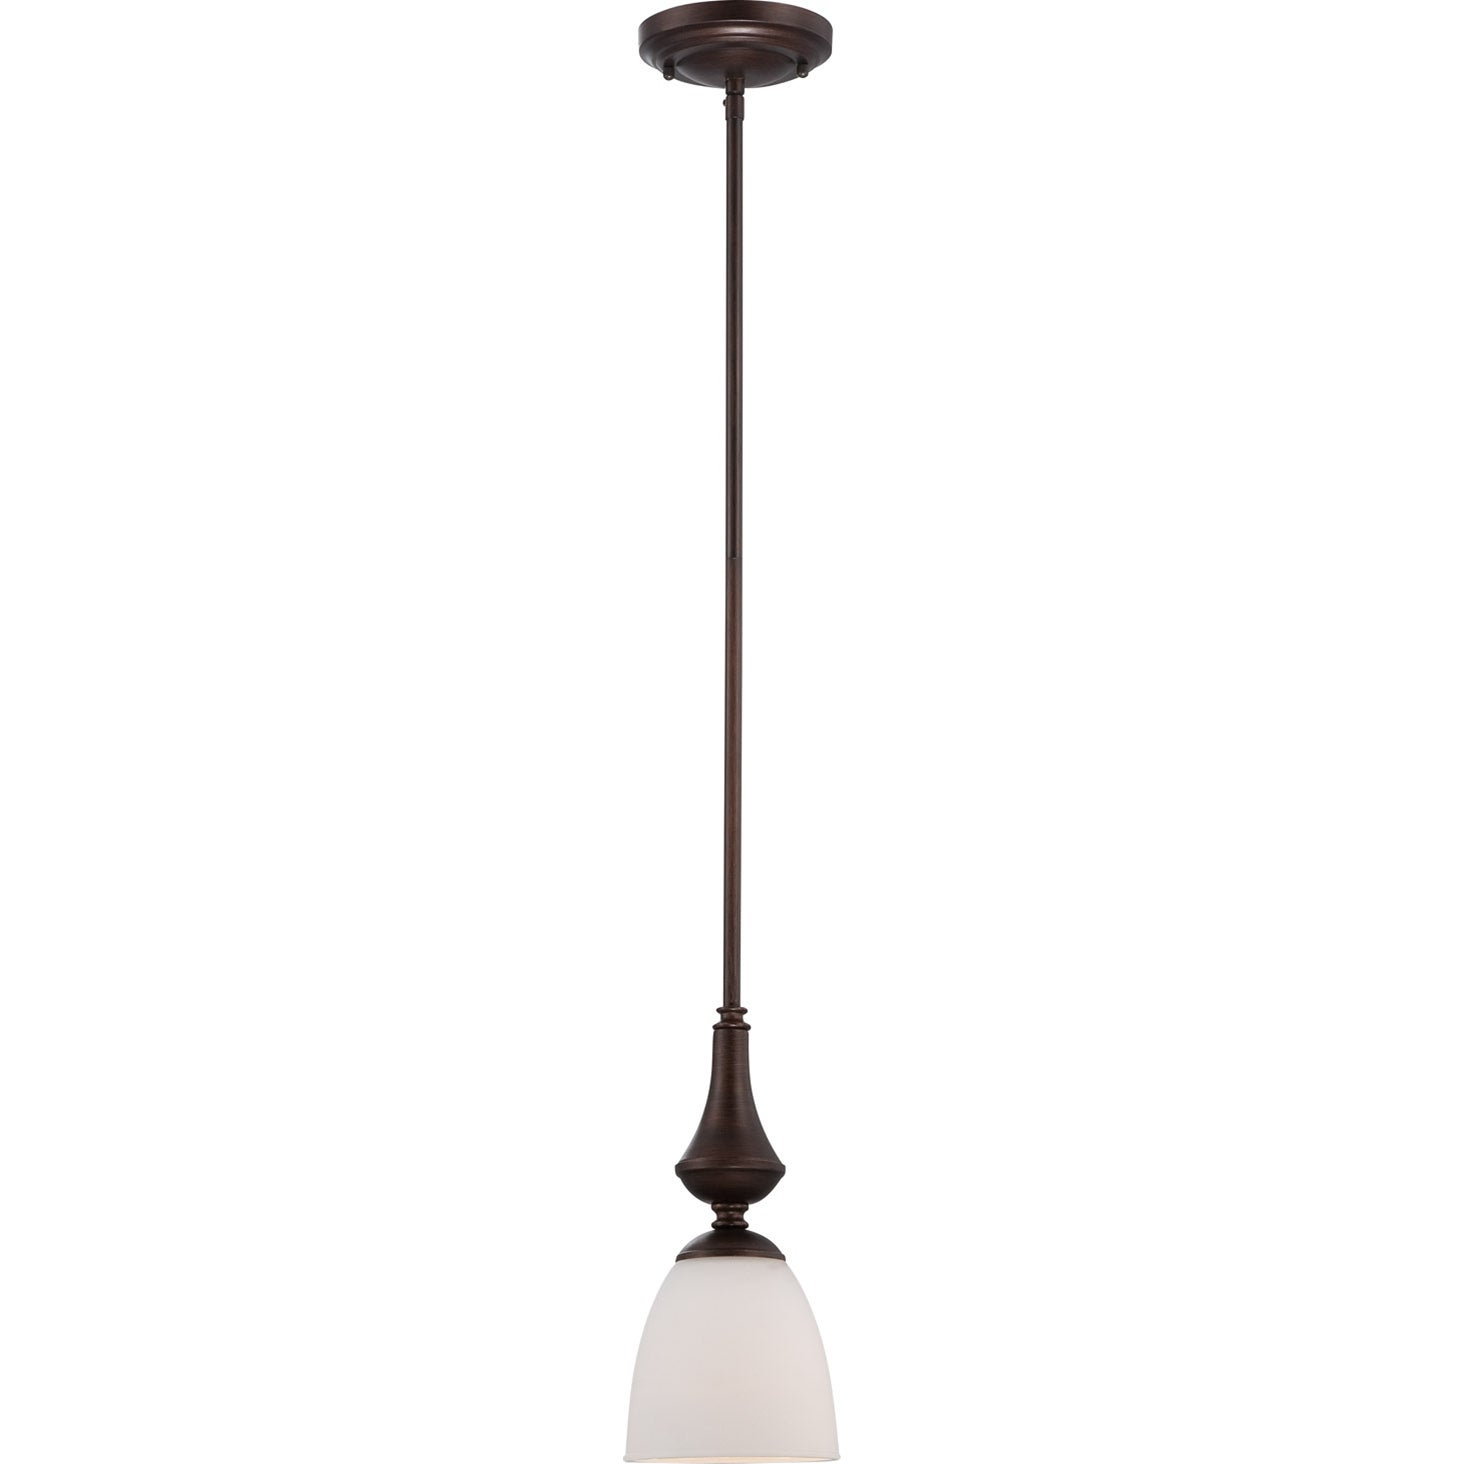 Nuvo Patton 1-light Prairie Bronze Fluorescent Mini Pendant